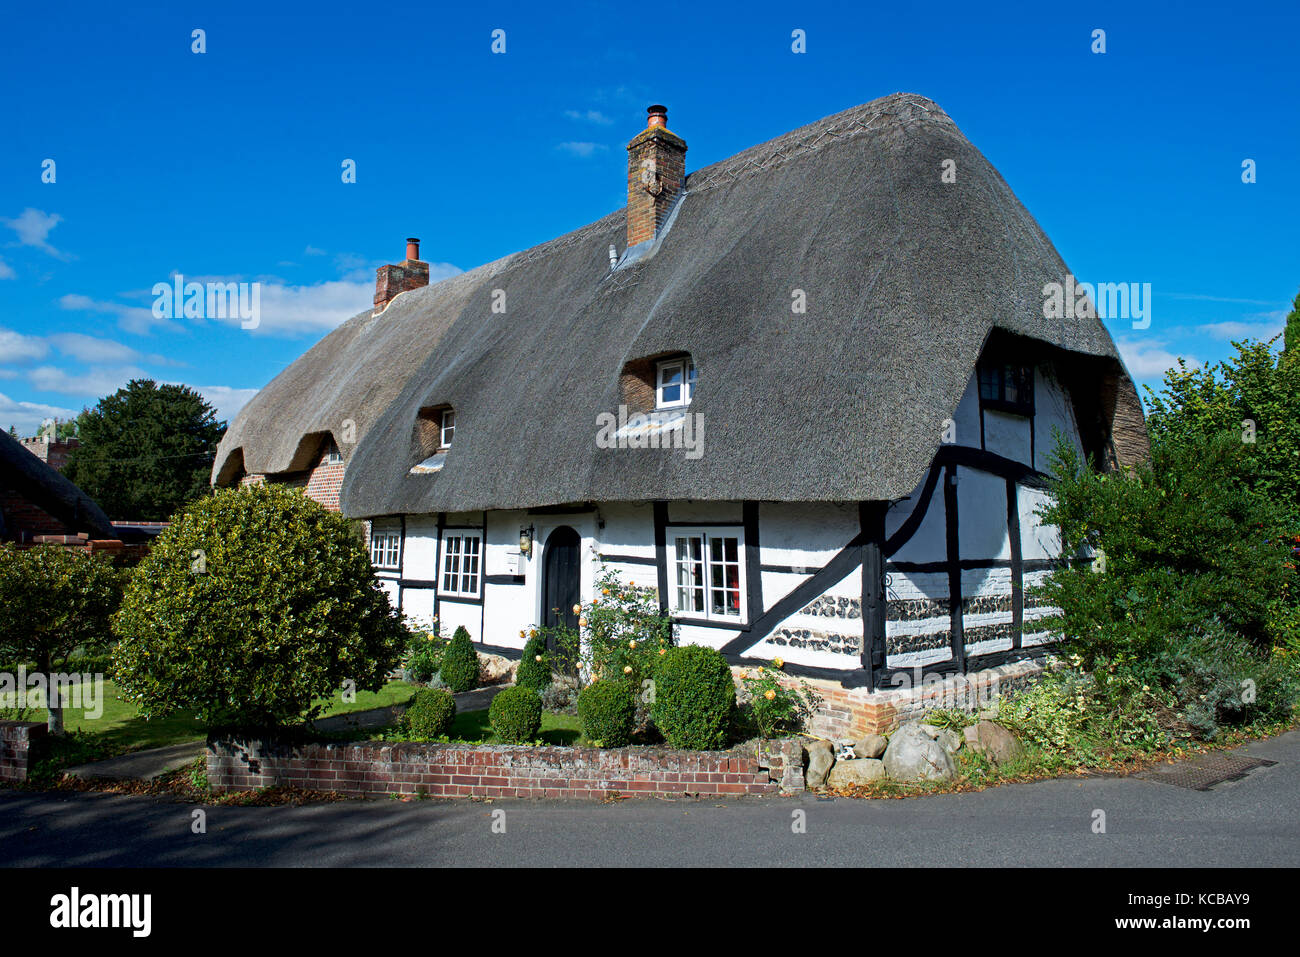 Thatched cottage in the village of Boxford, Berkshire, England UK - Stock Image